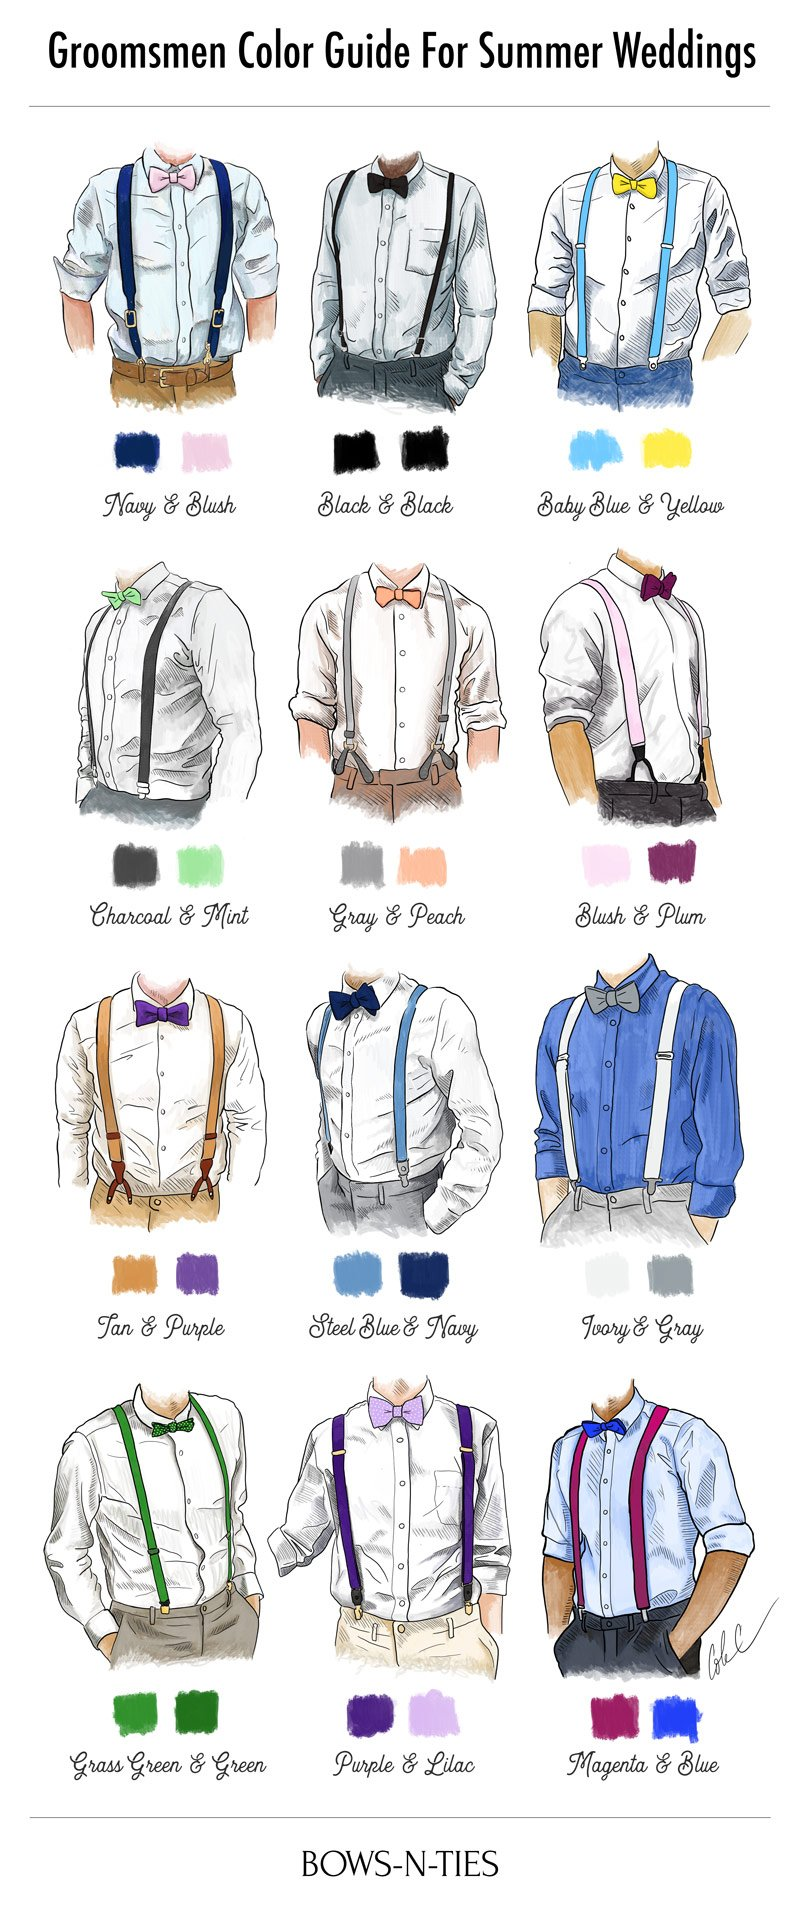 dfe48ea82c06 Groomsmen Wedding Color Guide | How To Pair Wedding Suspenders With ...